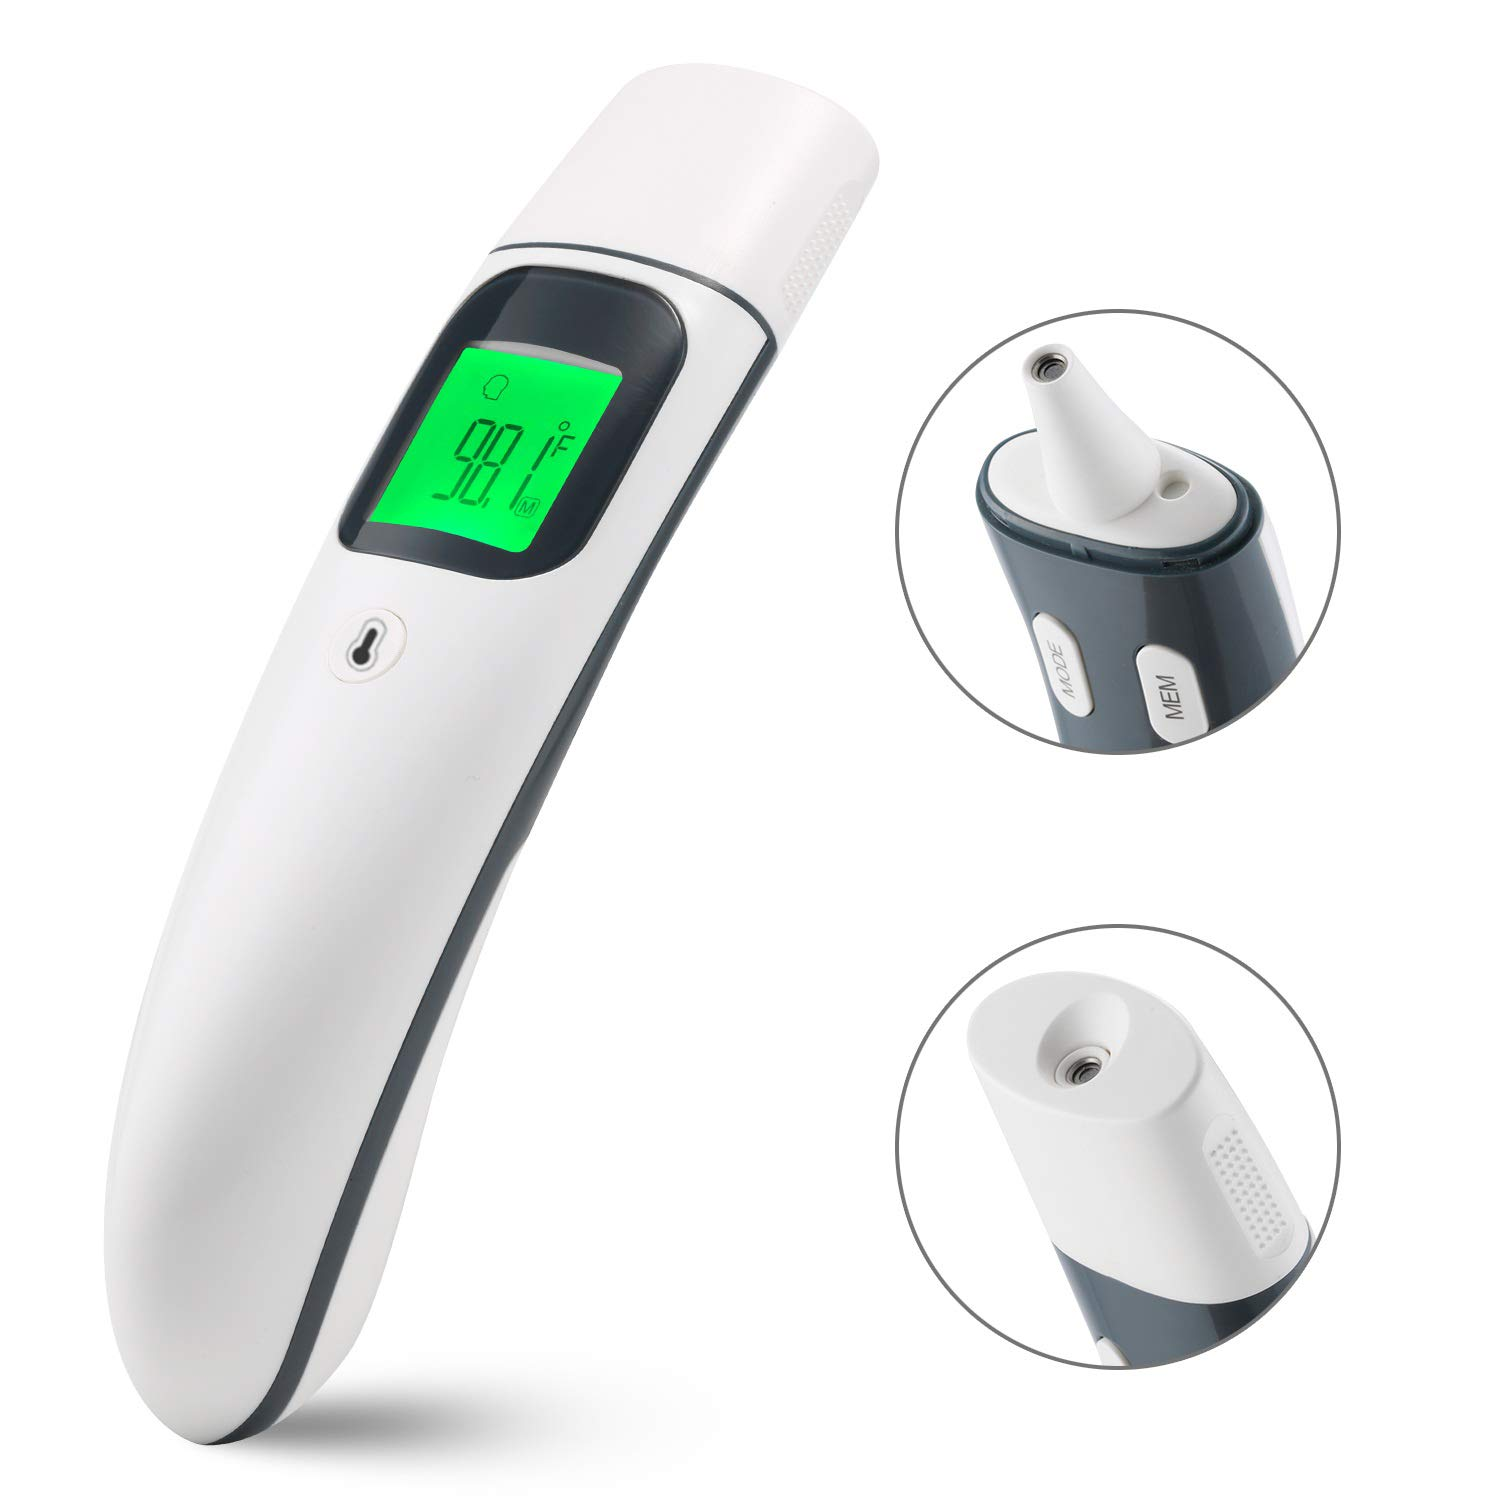 New Version FDA Approved Dual Functional Ear Thermometer with Forehead Function Instant Read for Baby and Adults, Digital Infrared Thermometer with Fever Indication